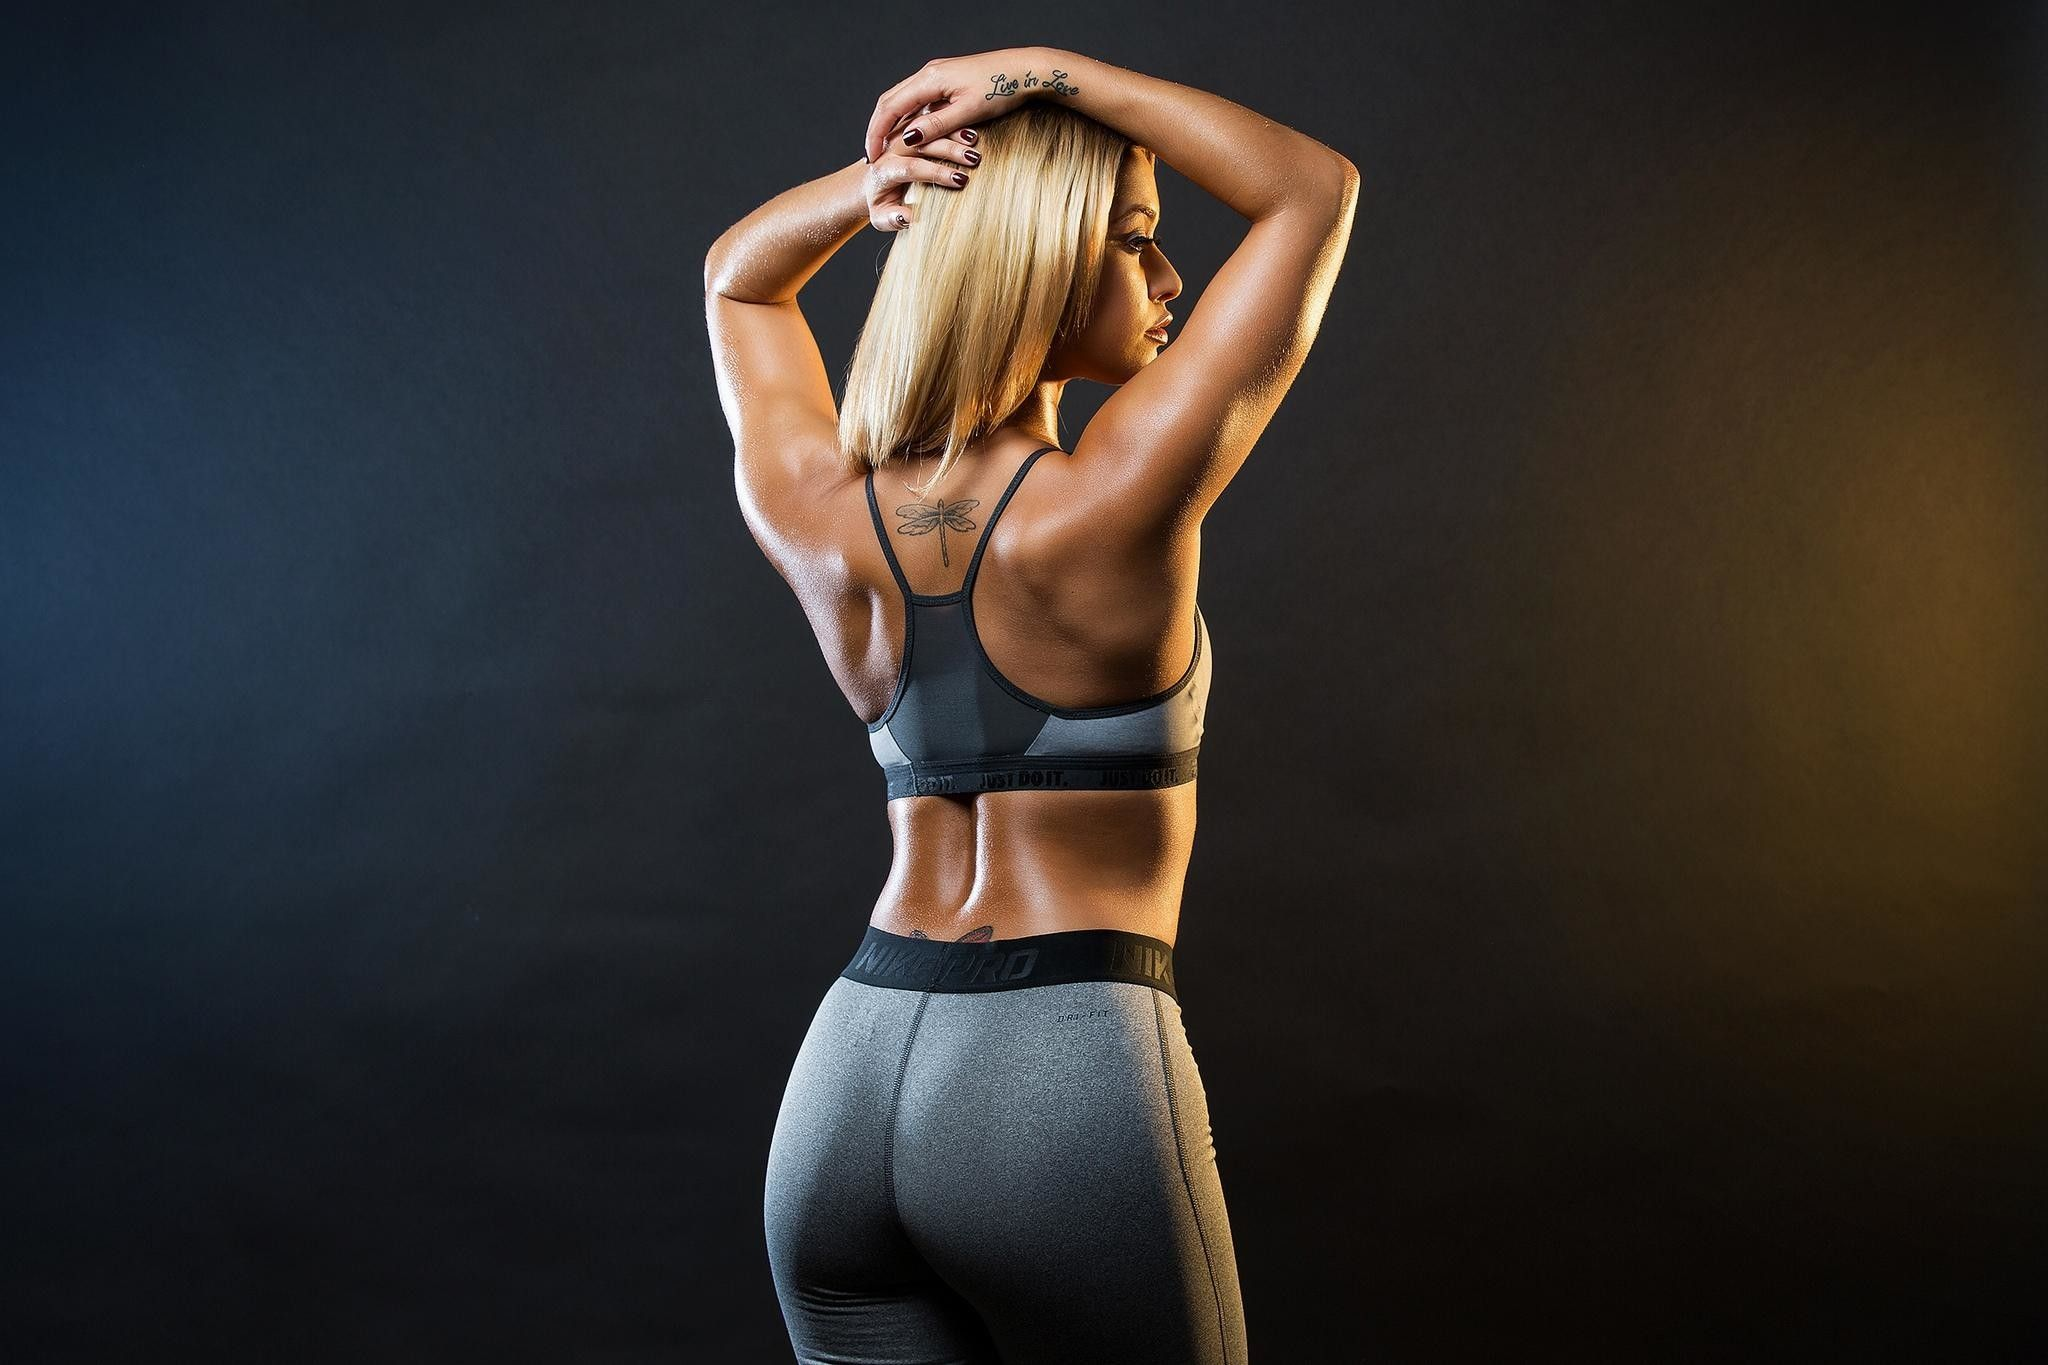 HD Workout Wallpapers